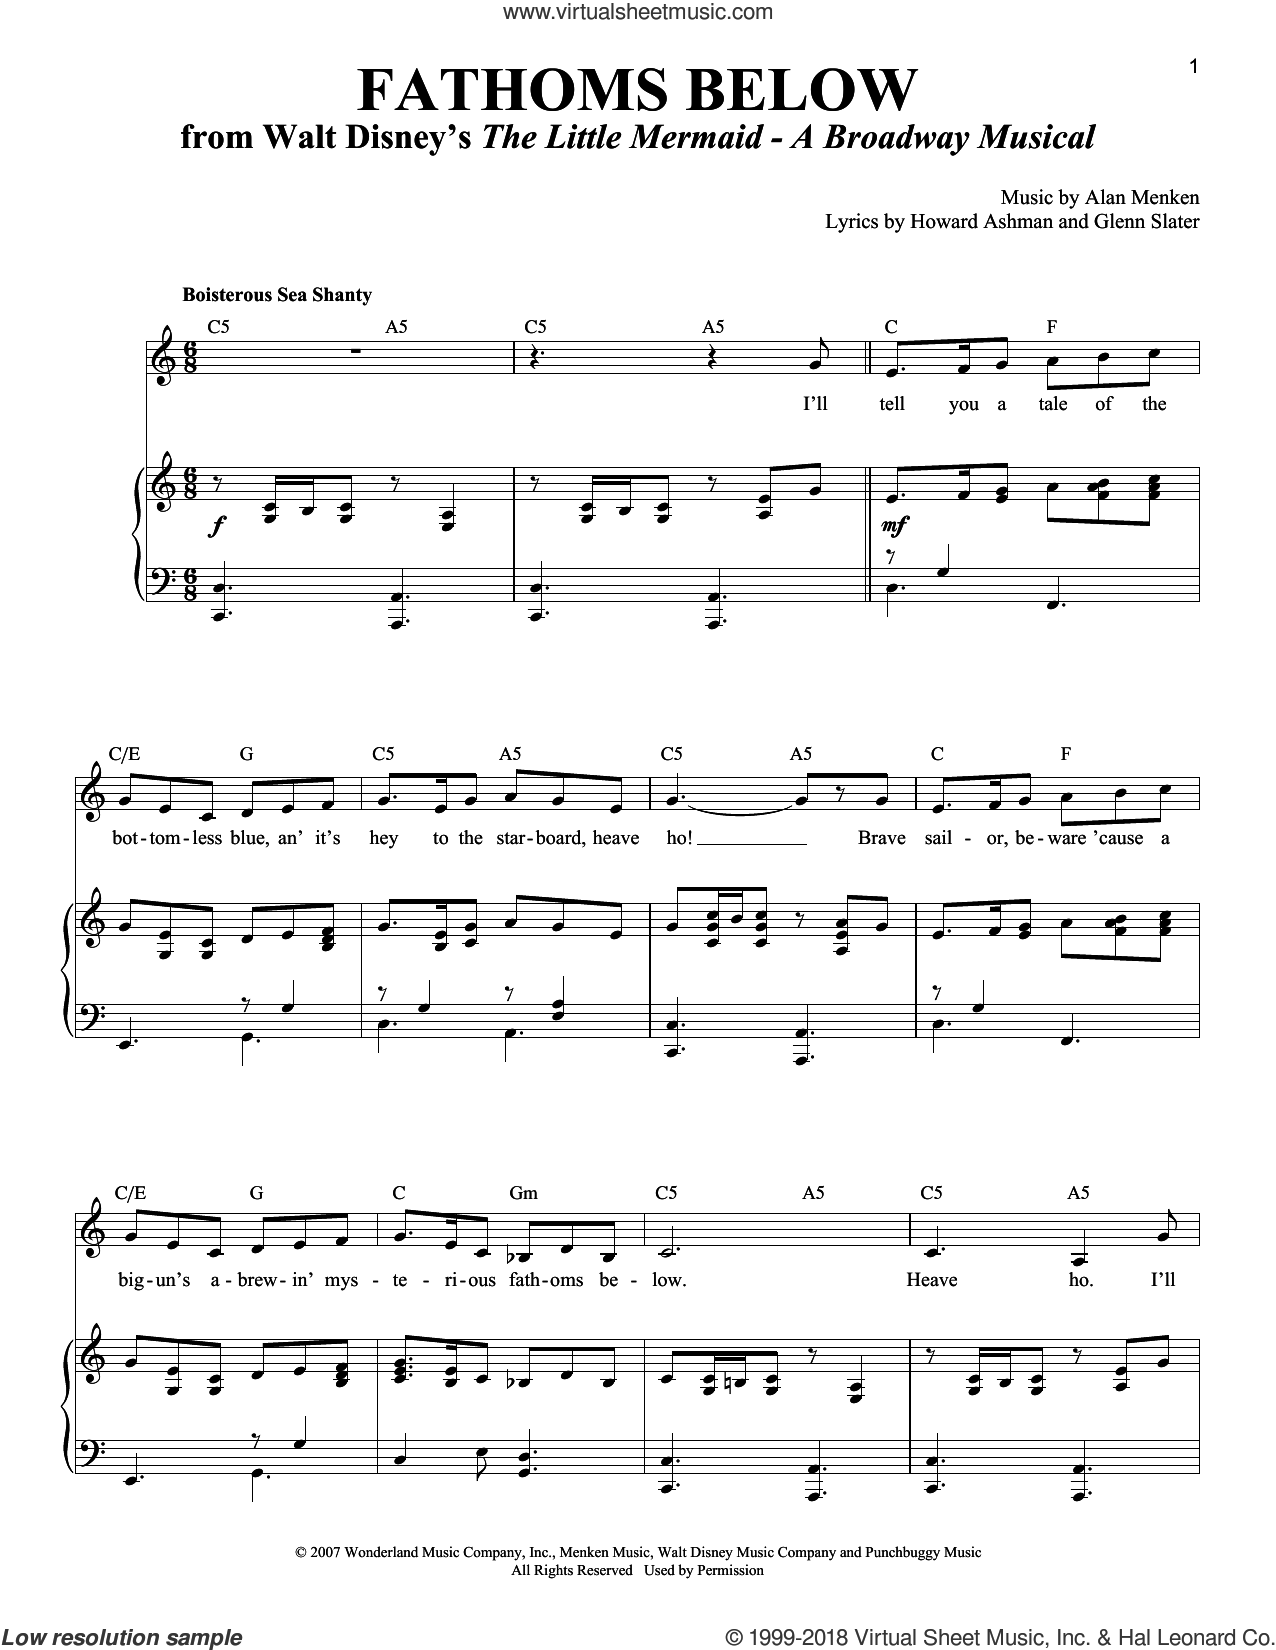 Fathoms Below sheet music for voice and piano by Alan Menken, Glenn Slater and Howard Ashman. Score Image Preview.